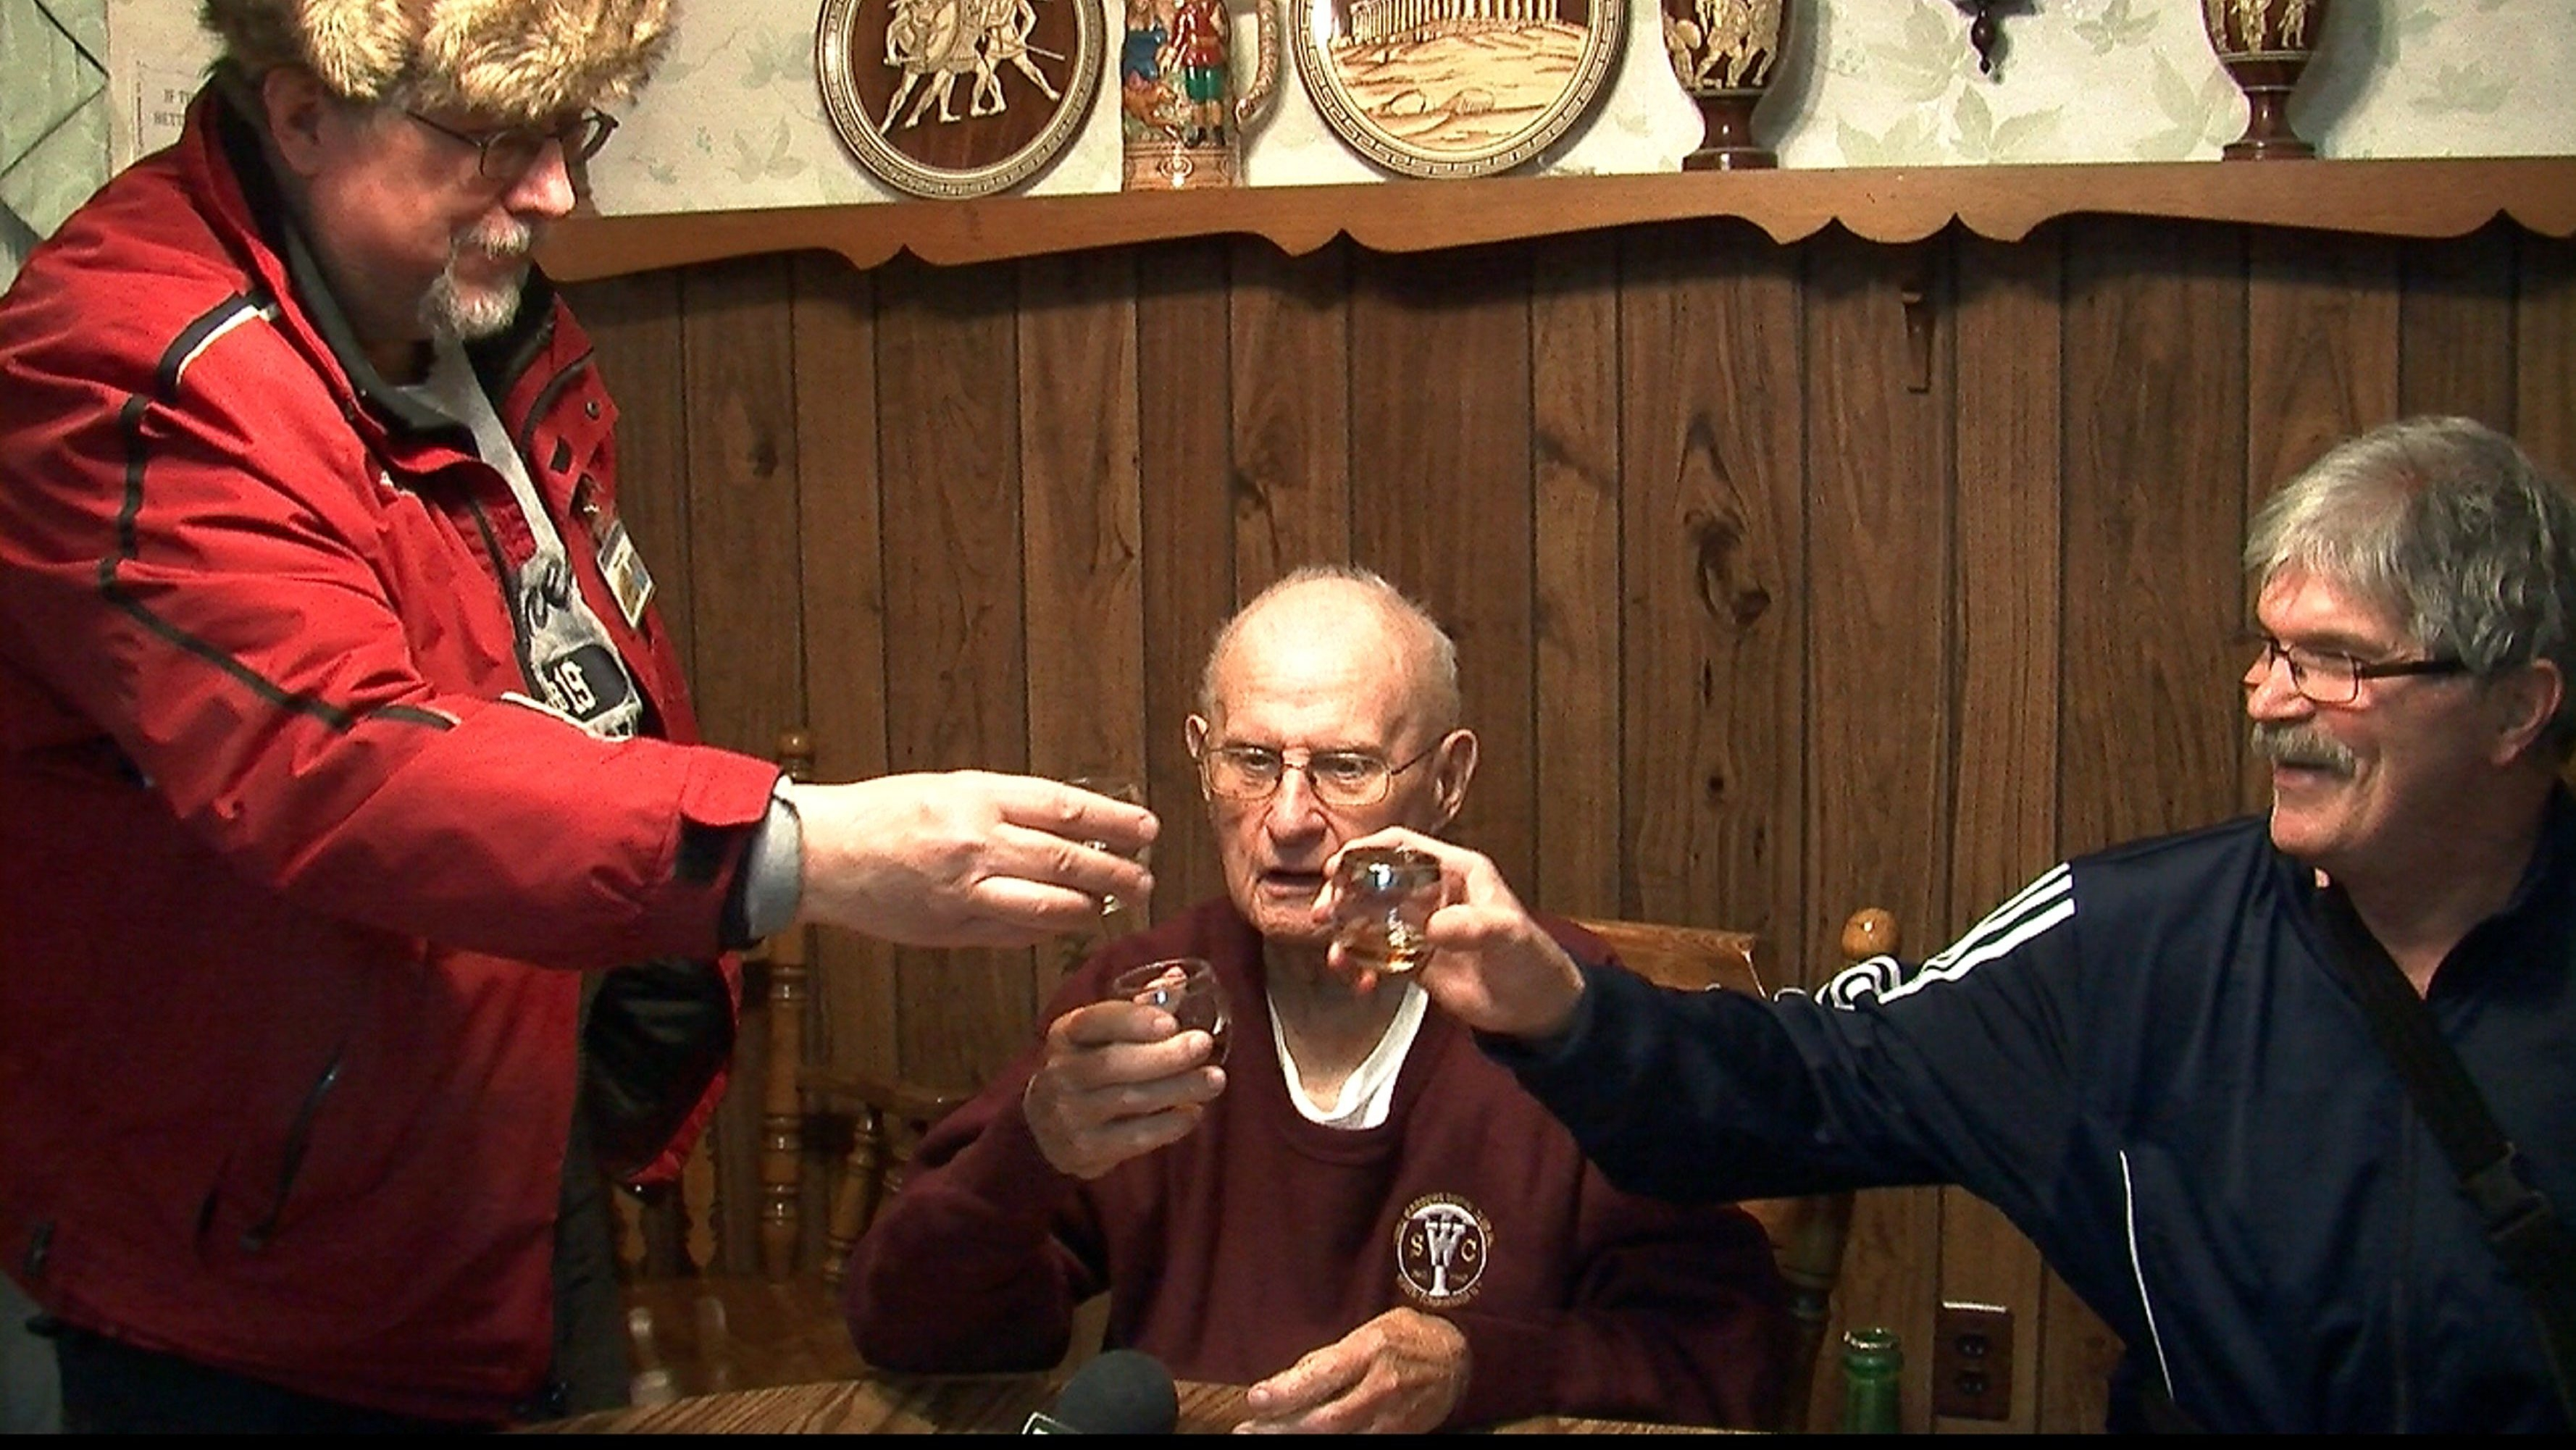 Third Warder Club members Mike Janda, left, and Jim Urbaniak, right, toast Chet Samborski, the last one among 50 friends and club members from 1948.